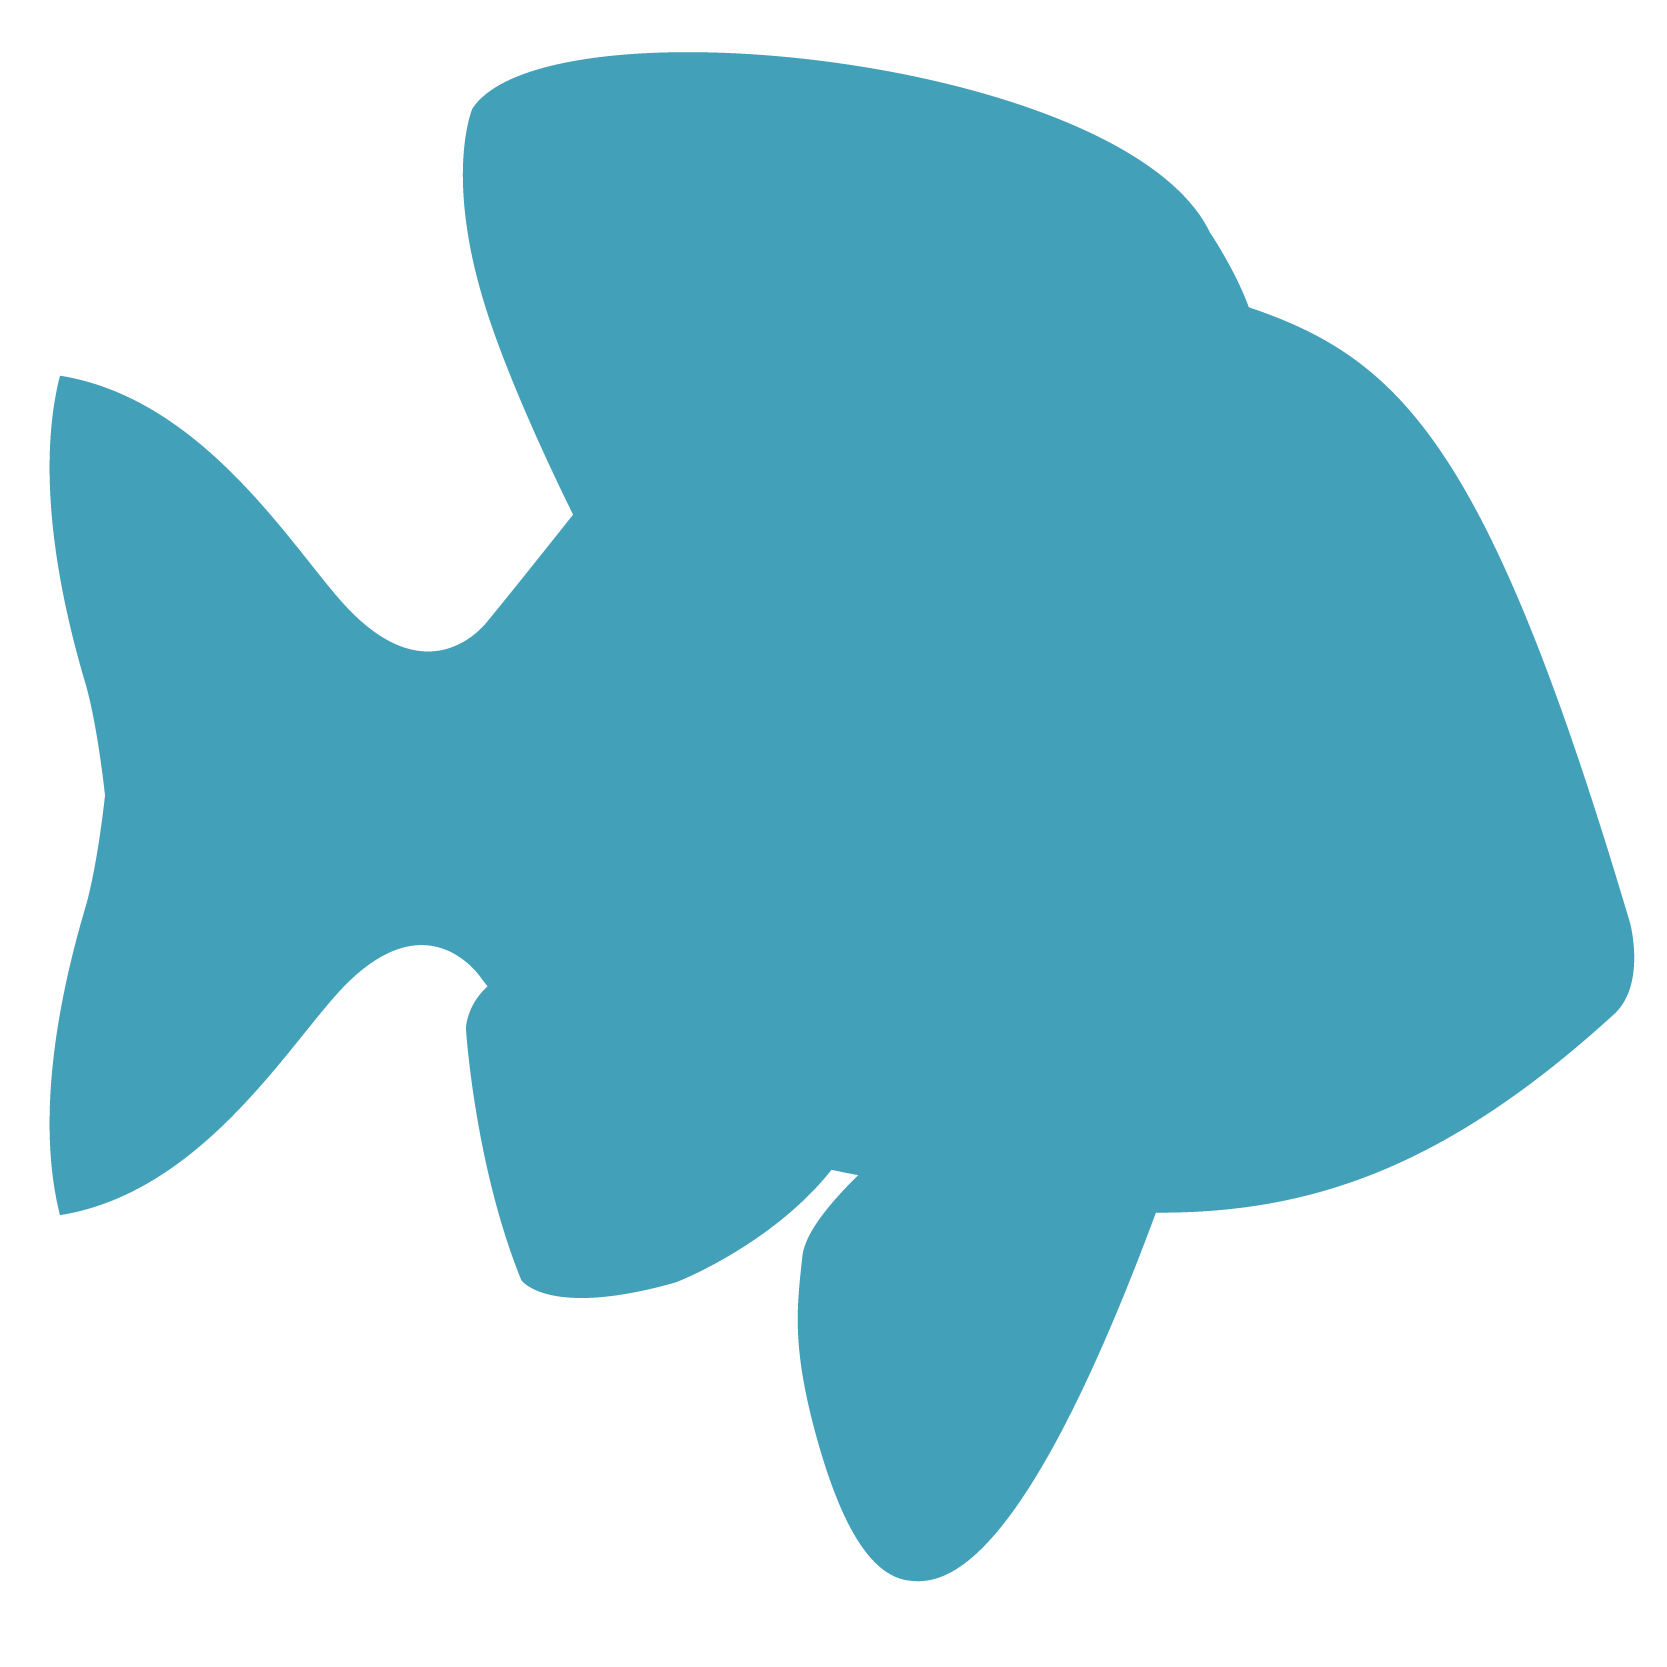 Whole lot of fish dating site